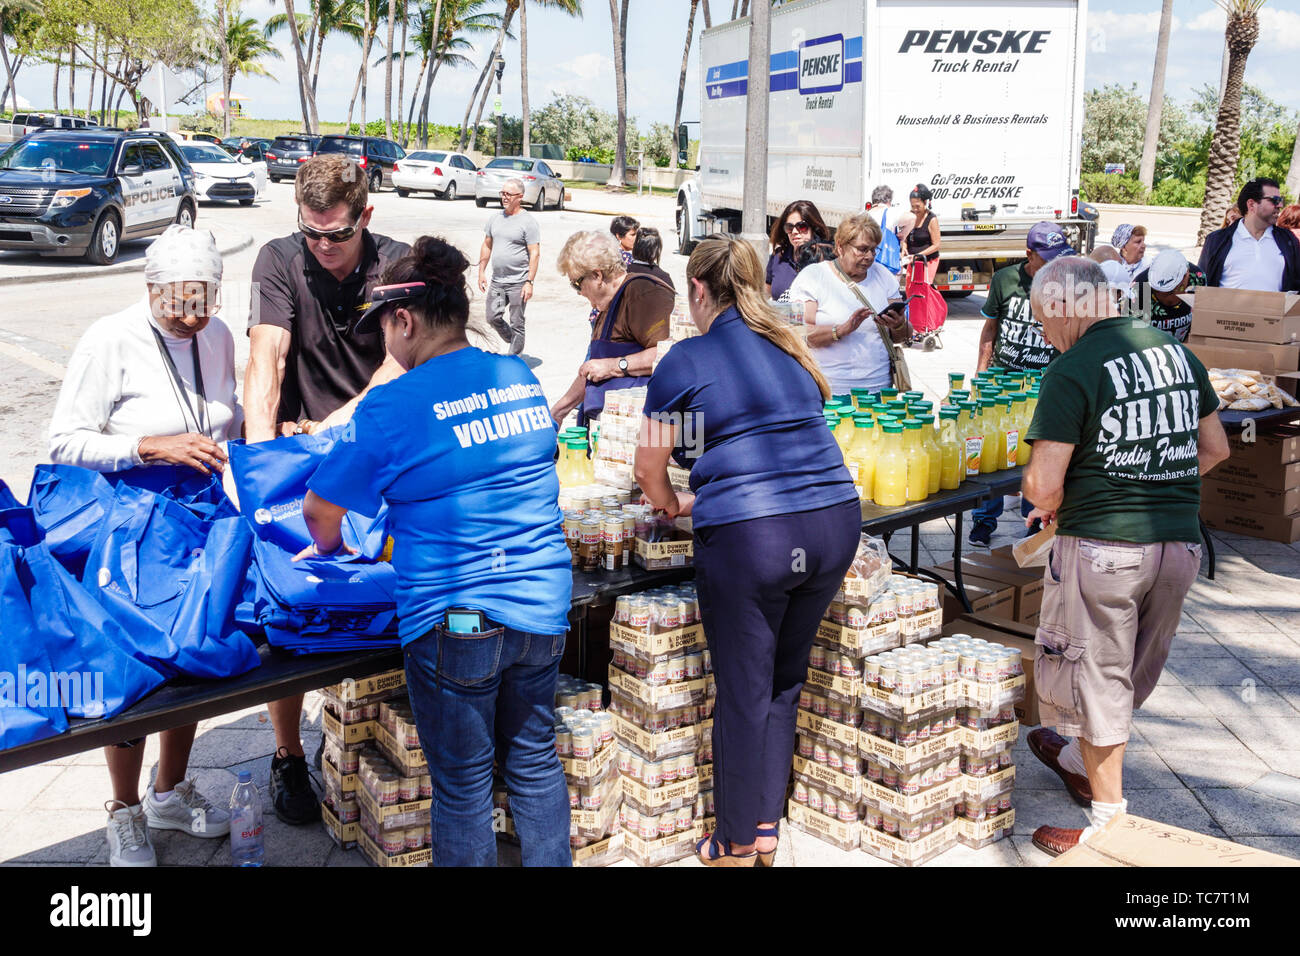 Miami Beach Florida North Beach Ocean Terrace Farm Share food giveaway free distribution needy low income volunteer man woman Hispanic Black Stock Photo